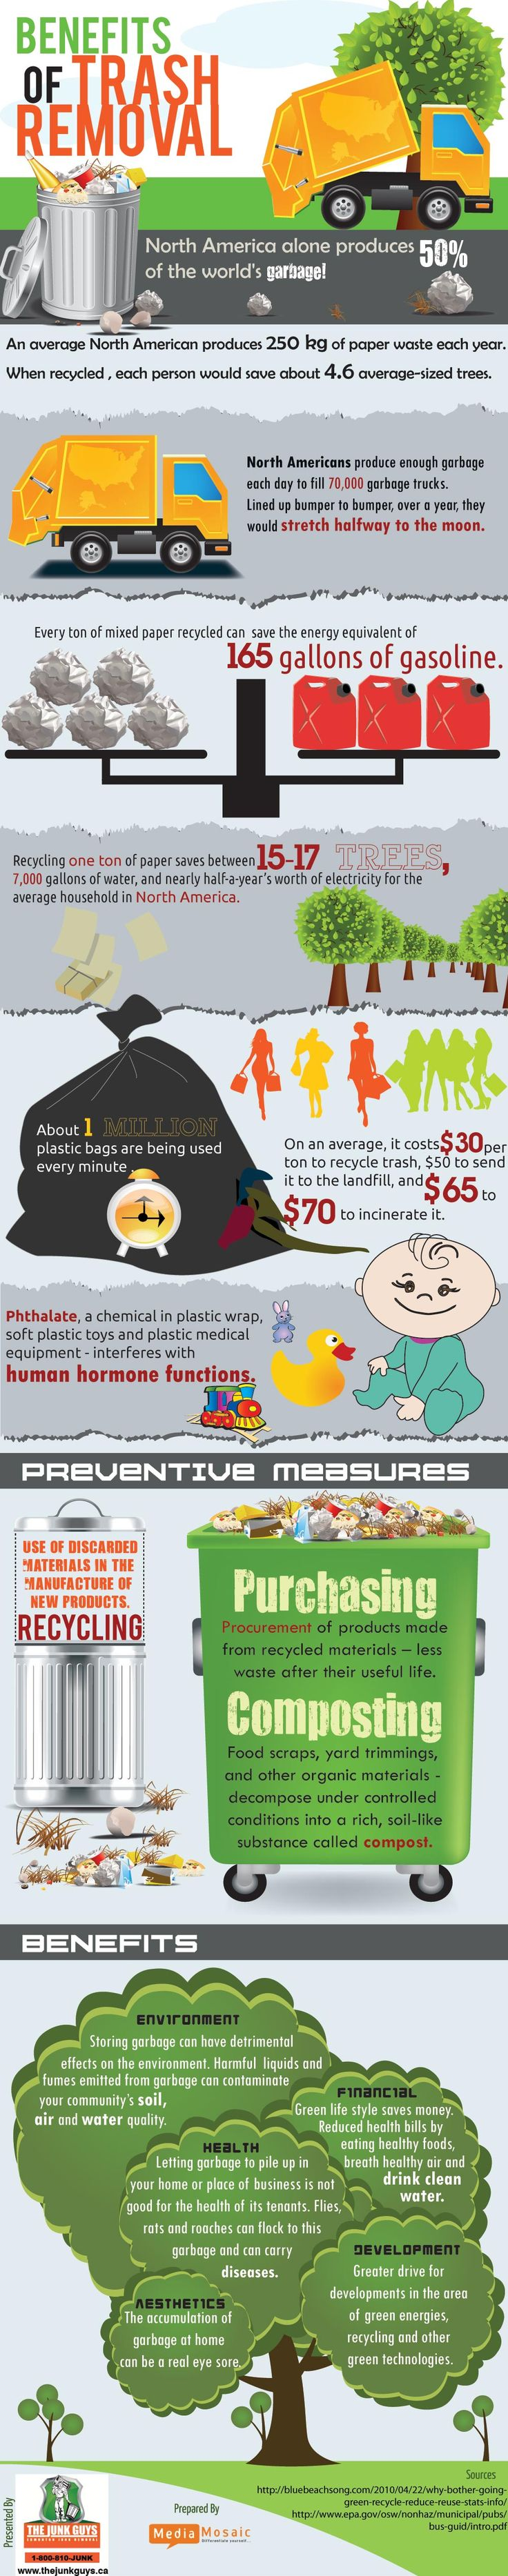 The Environmental Benefits of Taking Out the Trash [INFOGRAPHIC]